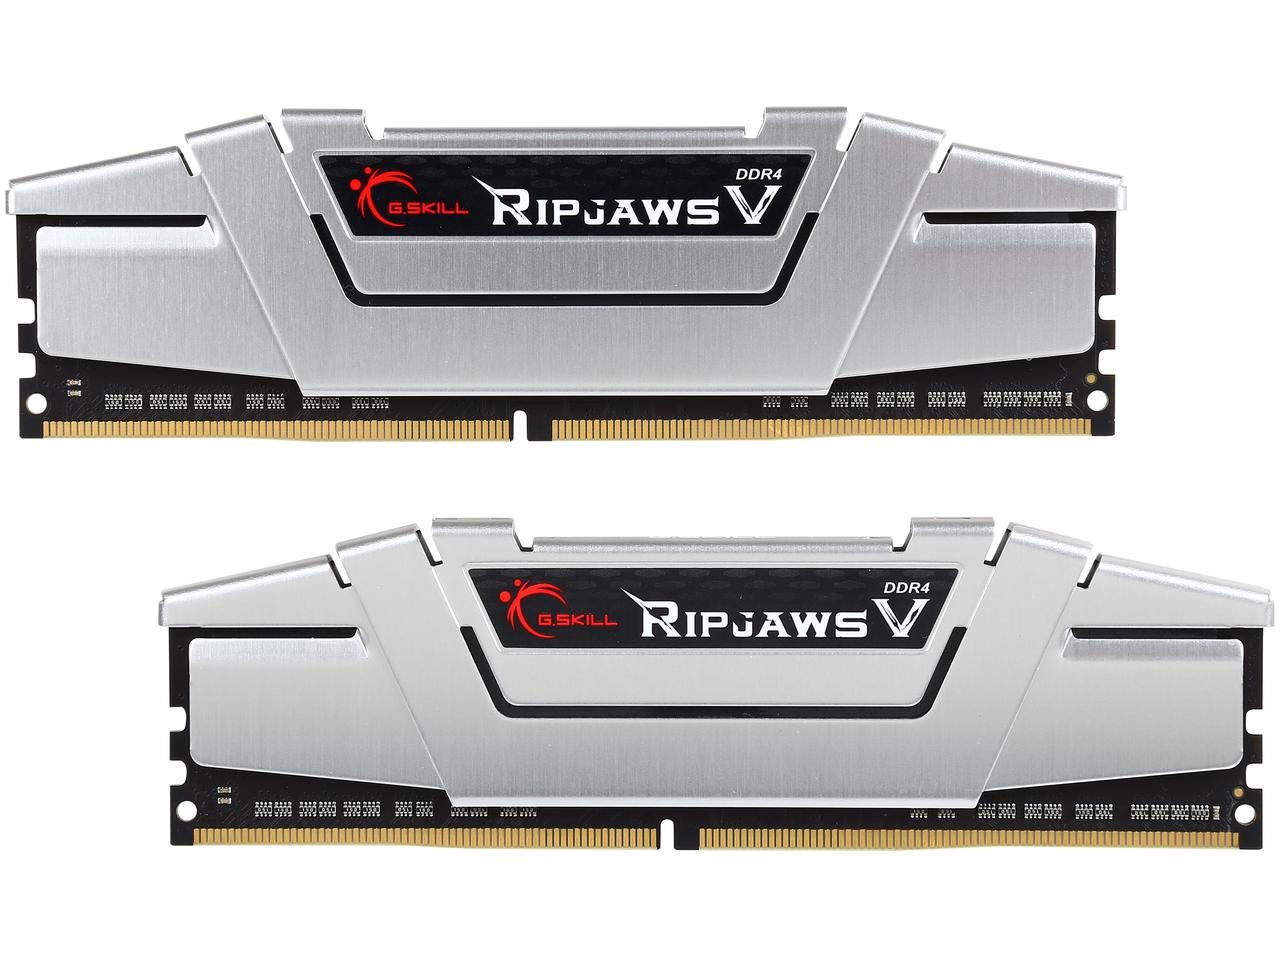 G.SKILL Ripjaws V Series 16GB (2 x 8GB) 288-Pin SDRAM DDR4 2800 (PC4 22400) Model F4-2800C15D-GVSB